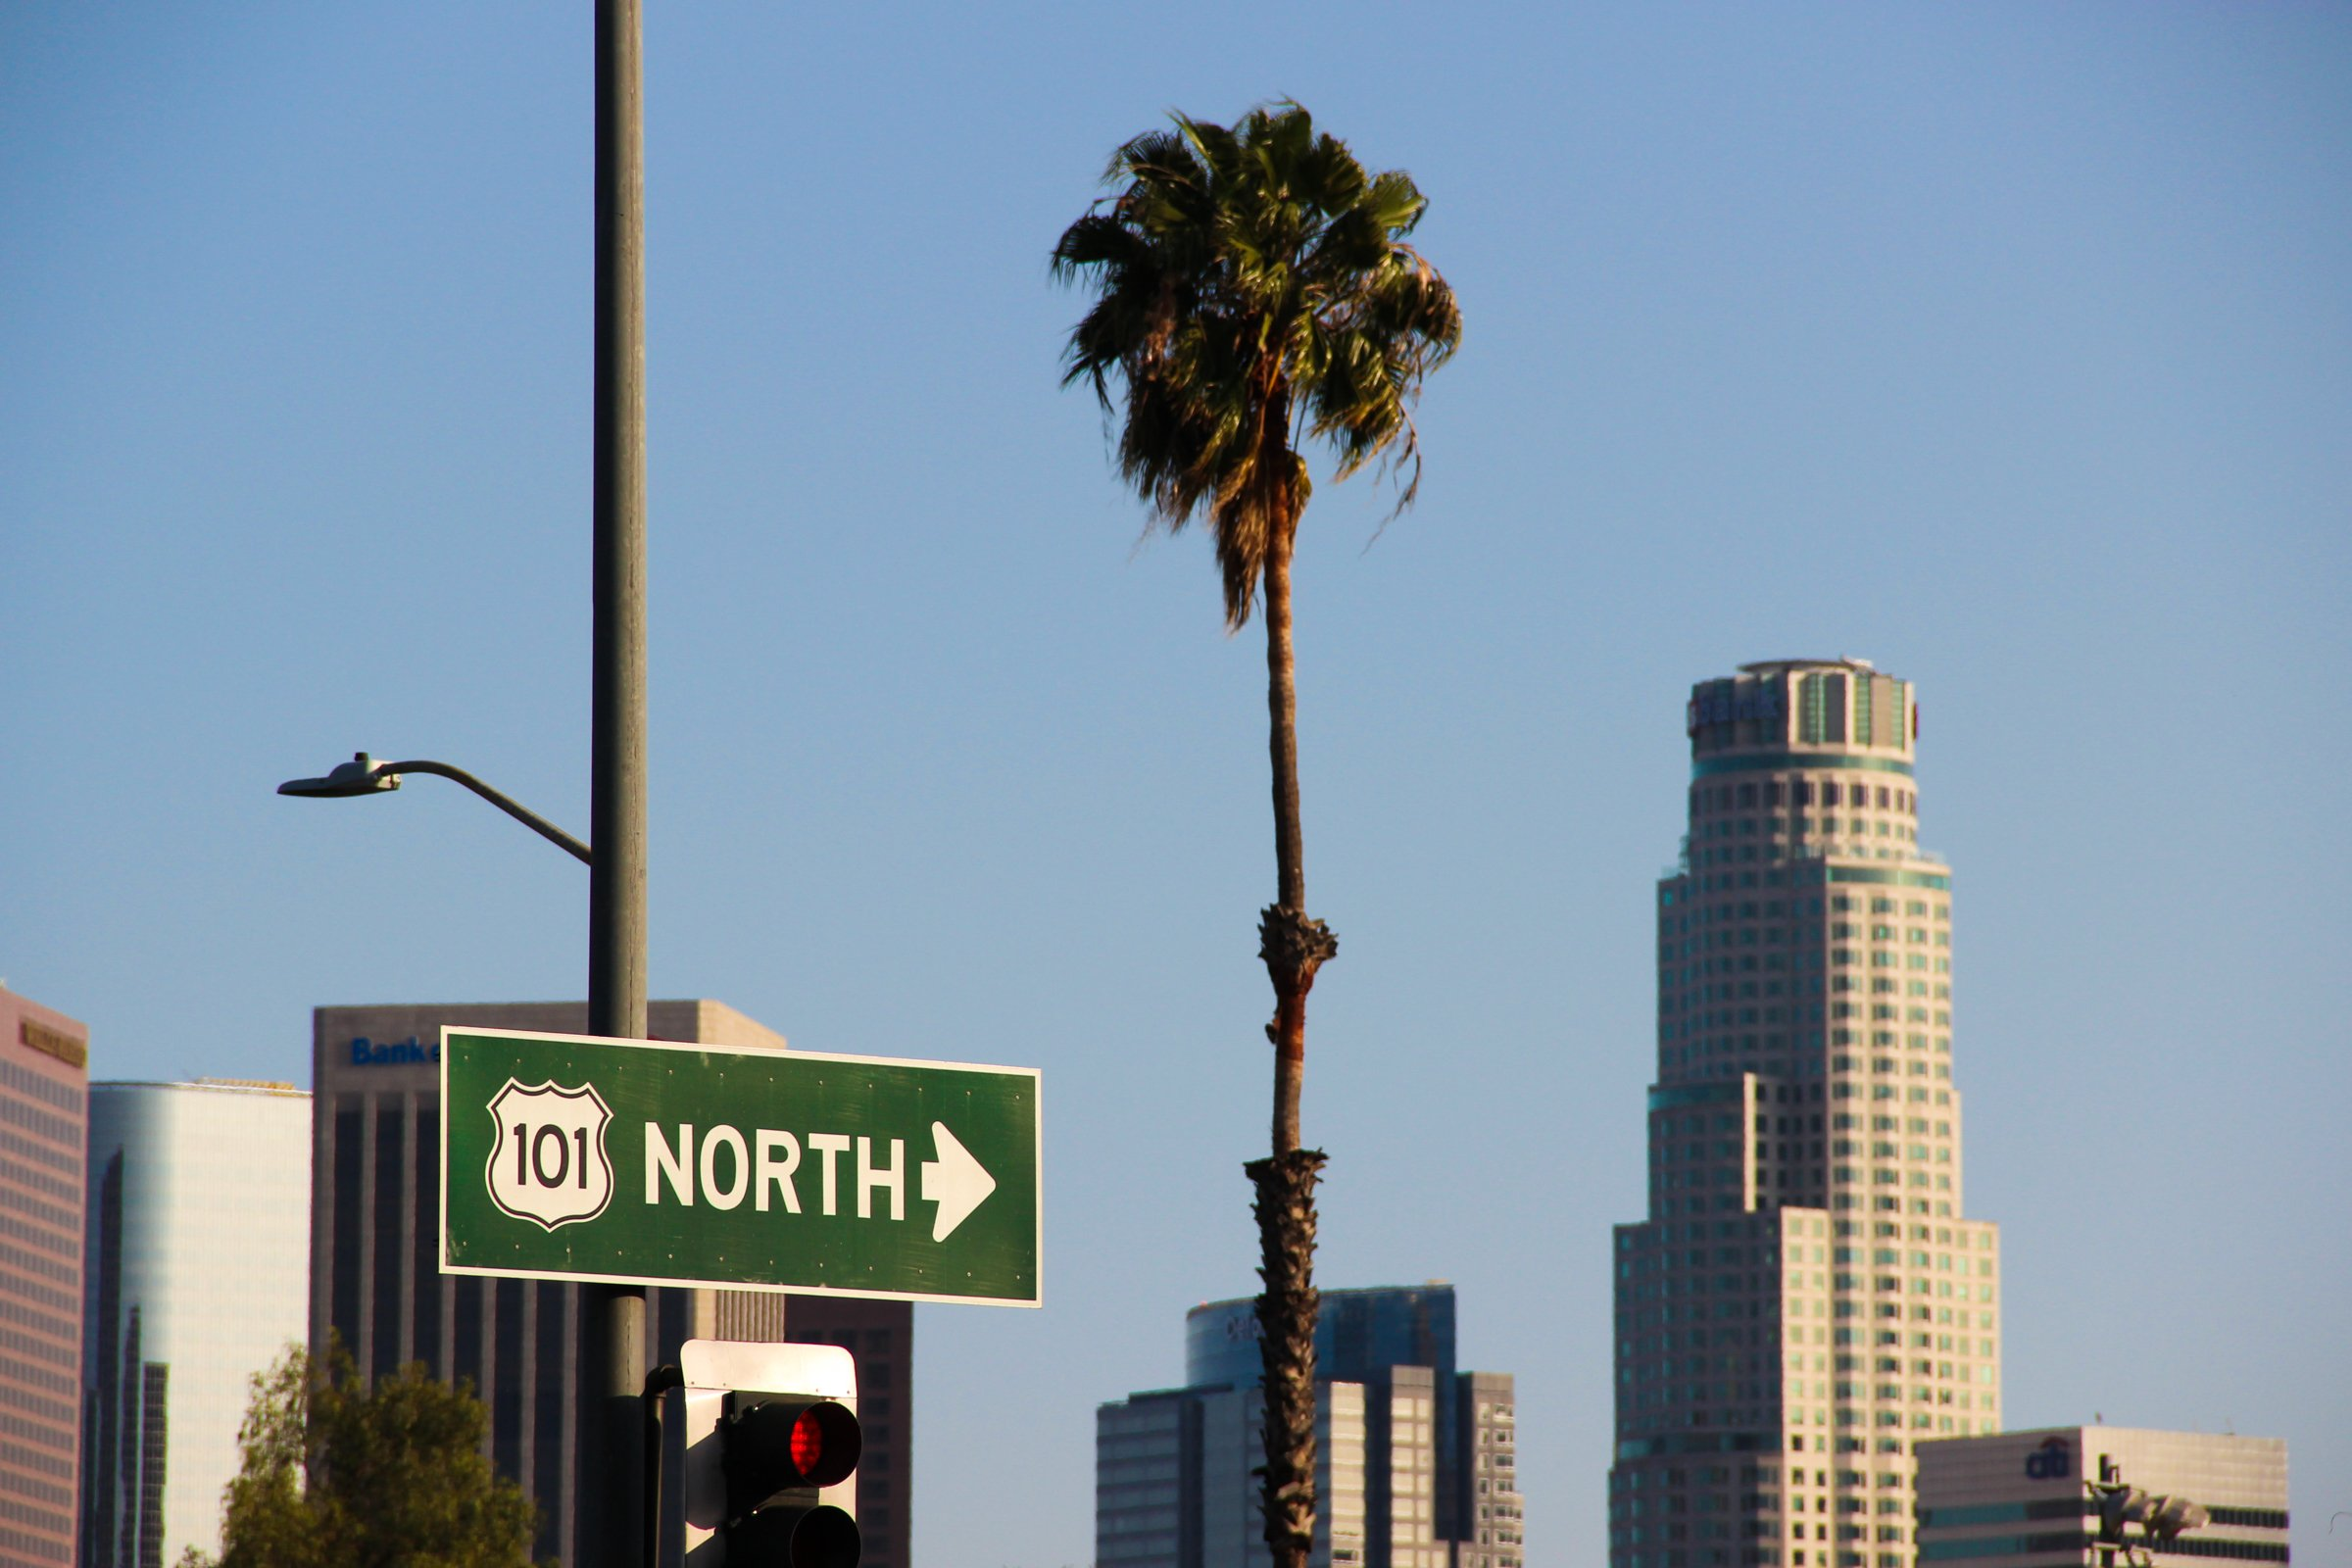 Palm Tree Among Buildings And Street Signs